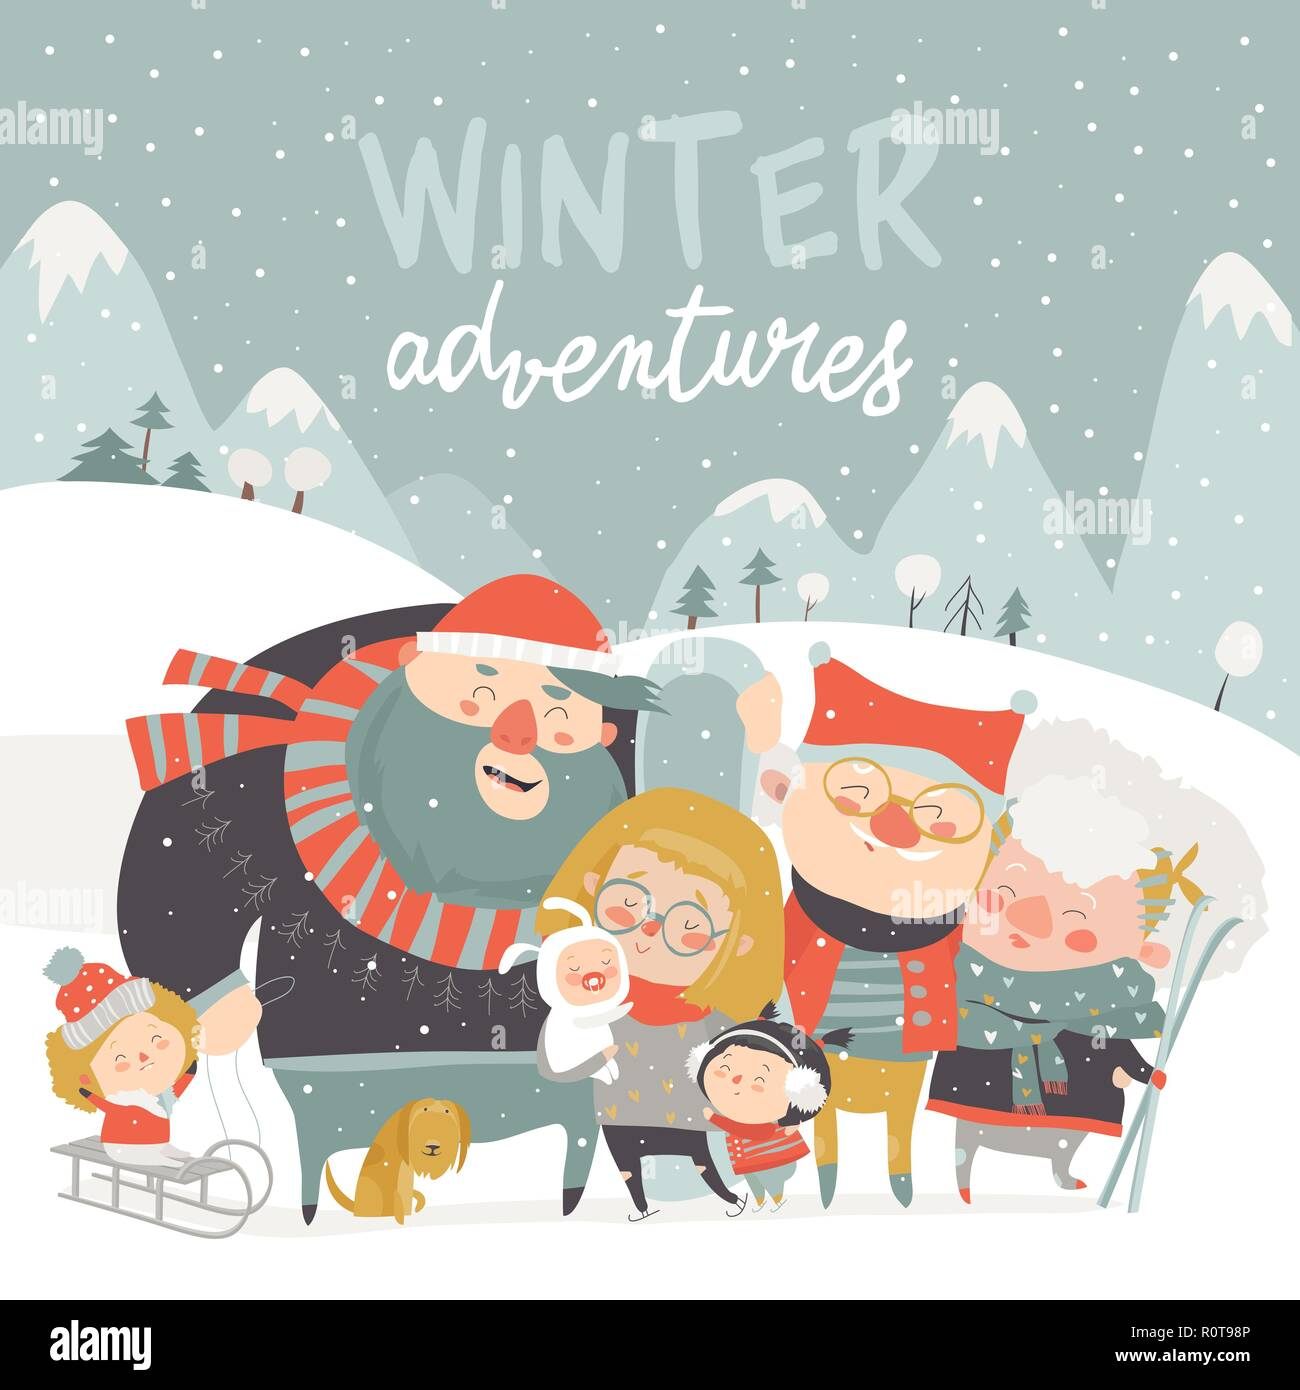 Winter season background people characters  Winter outdoor